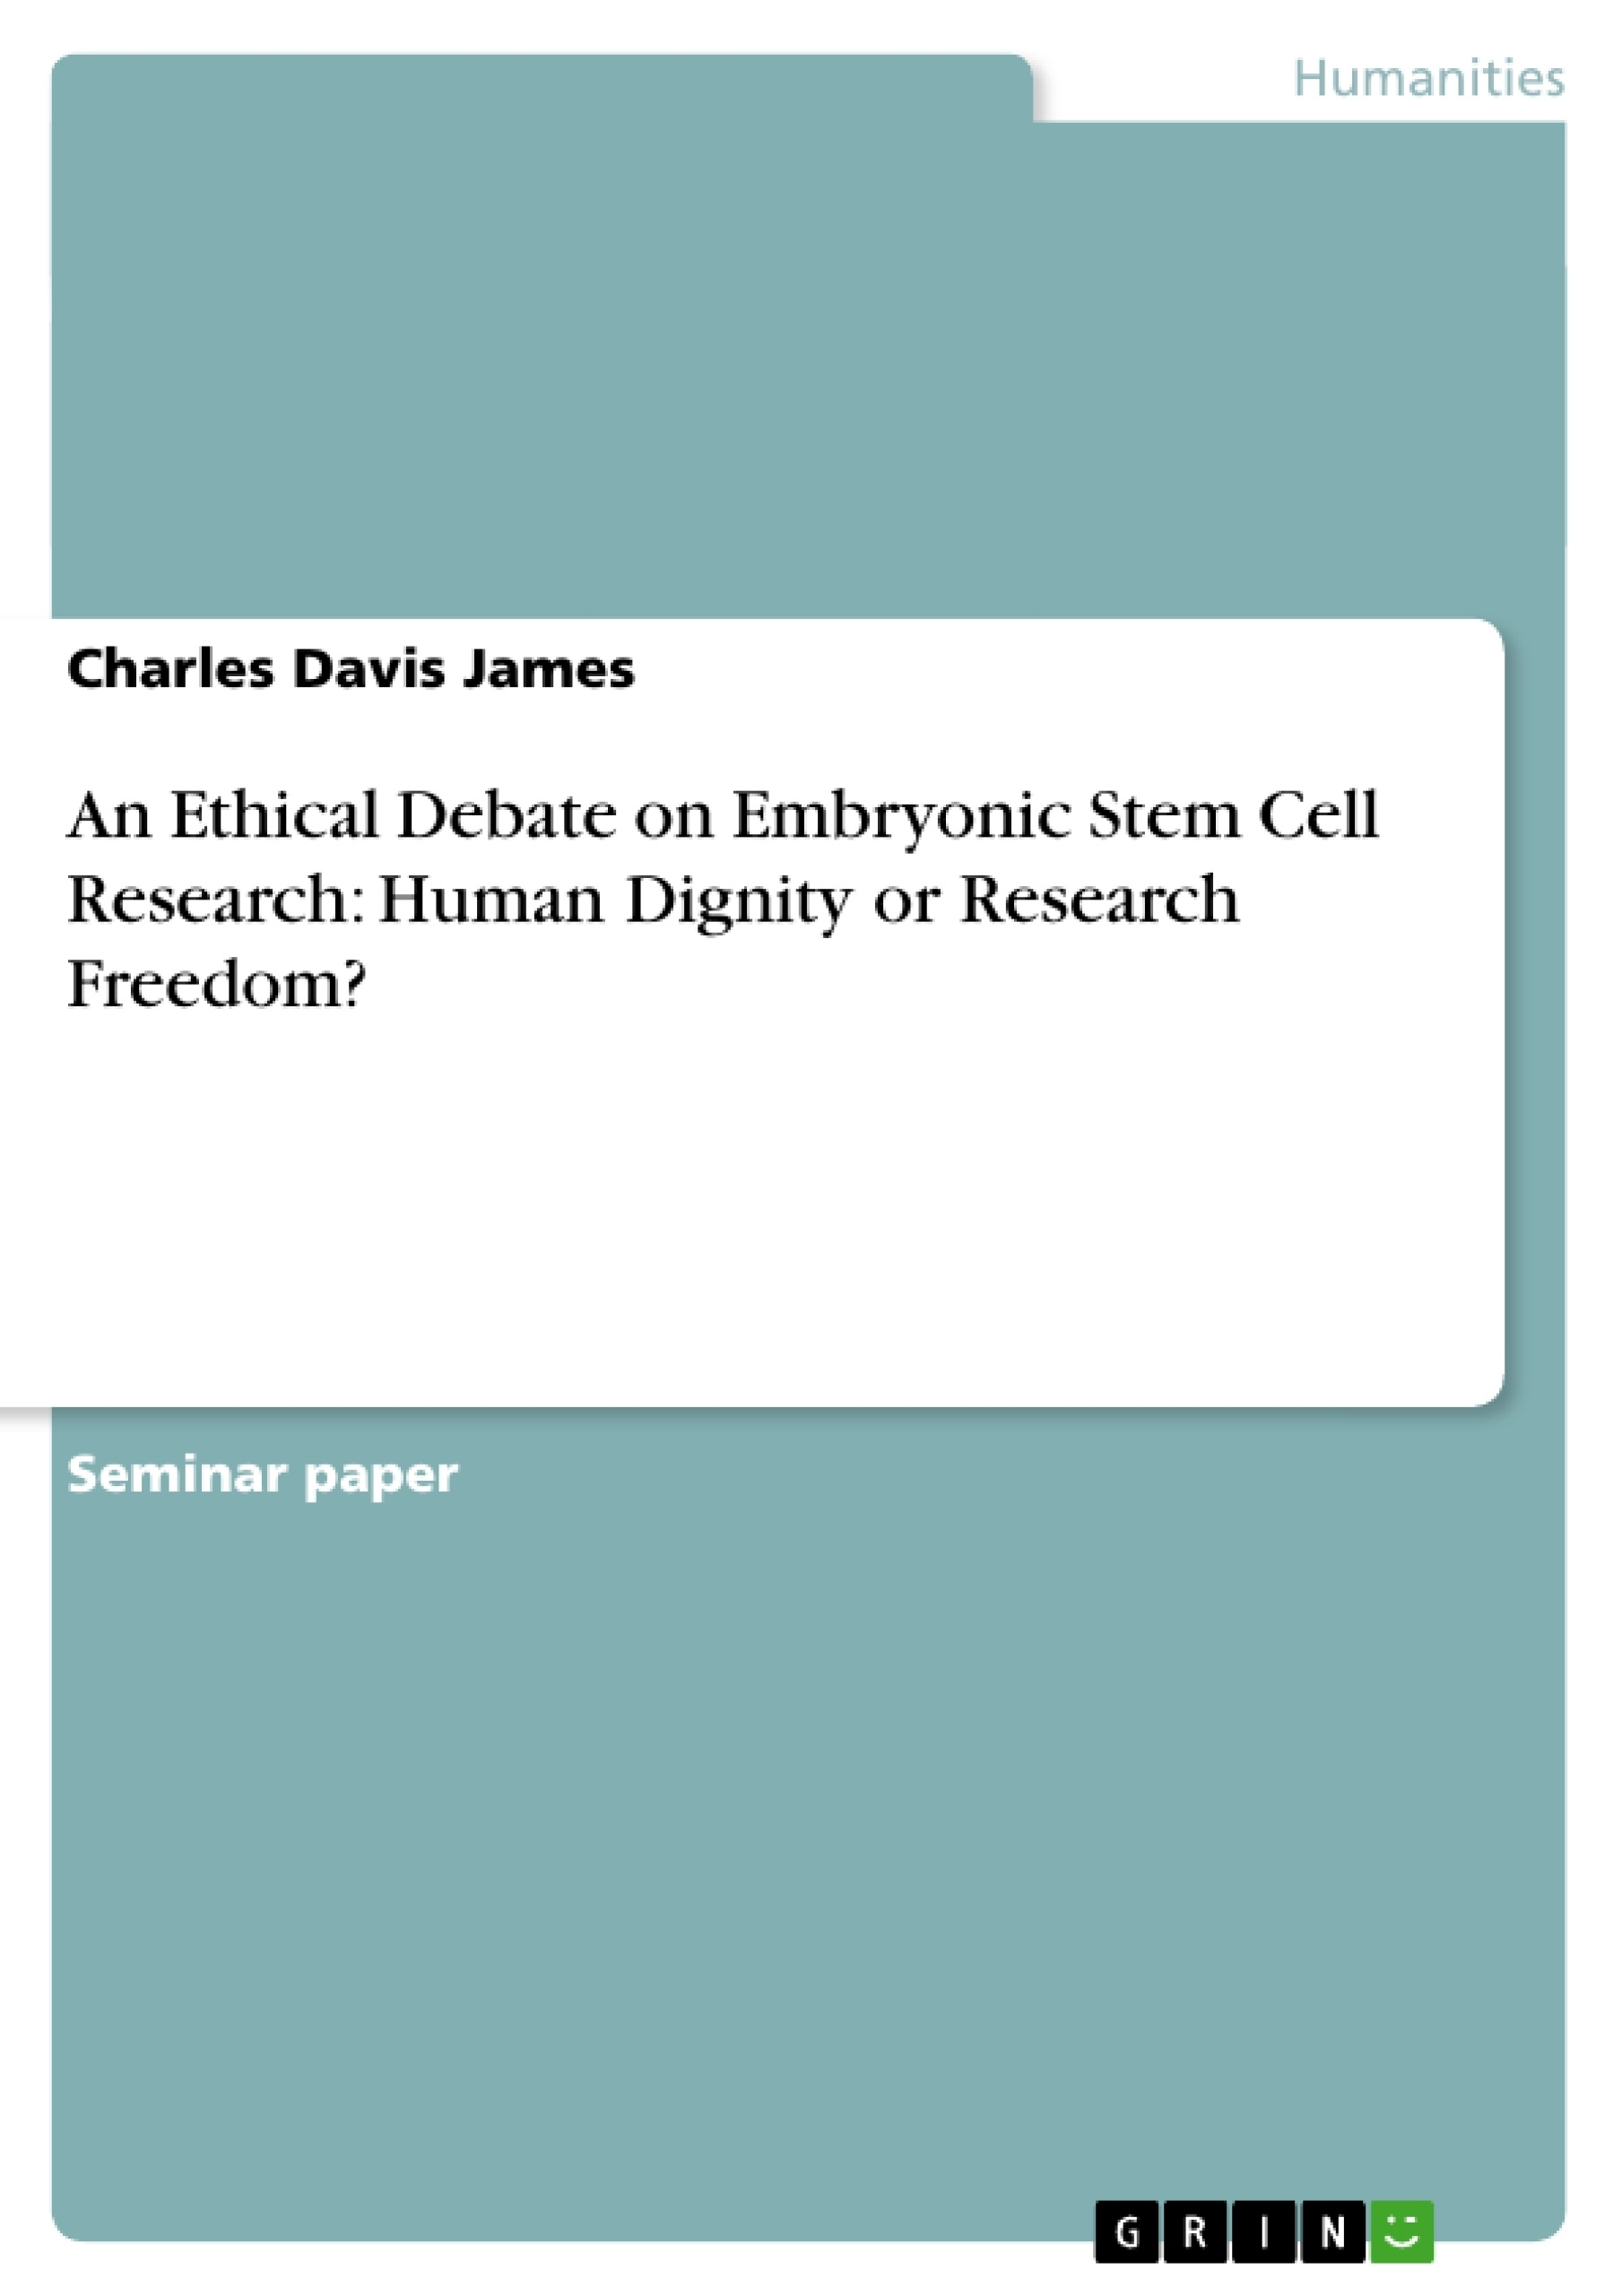 Title: An Ethical Debate on Embryonic Stem Cell Research: Human Dignity or Research Freedom?